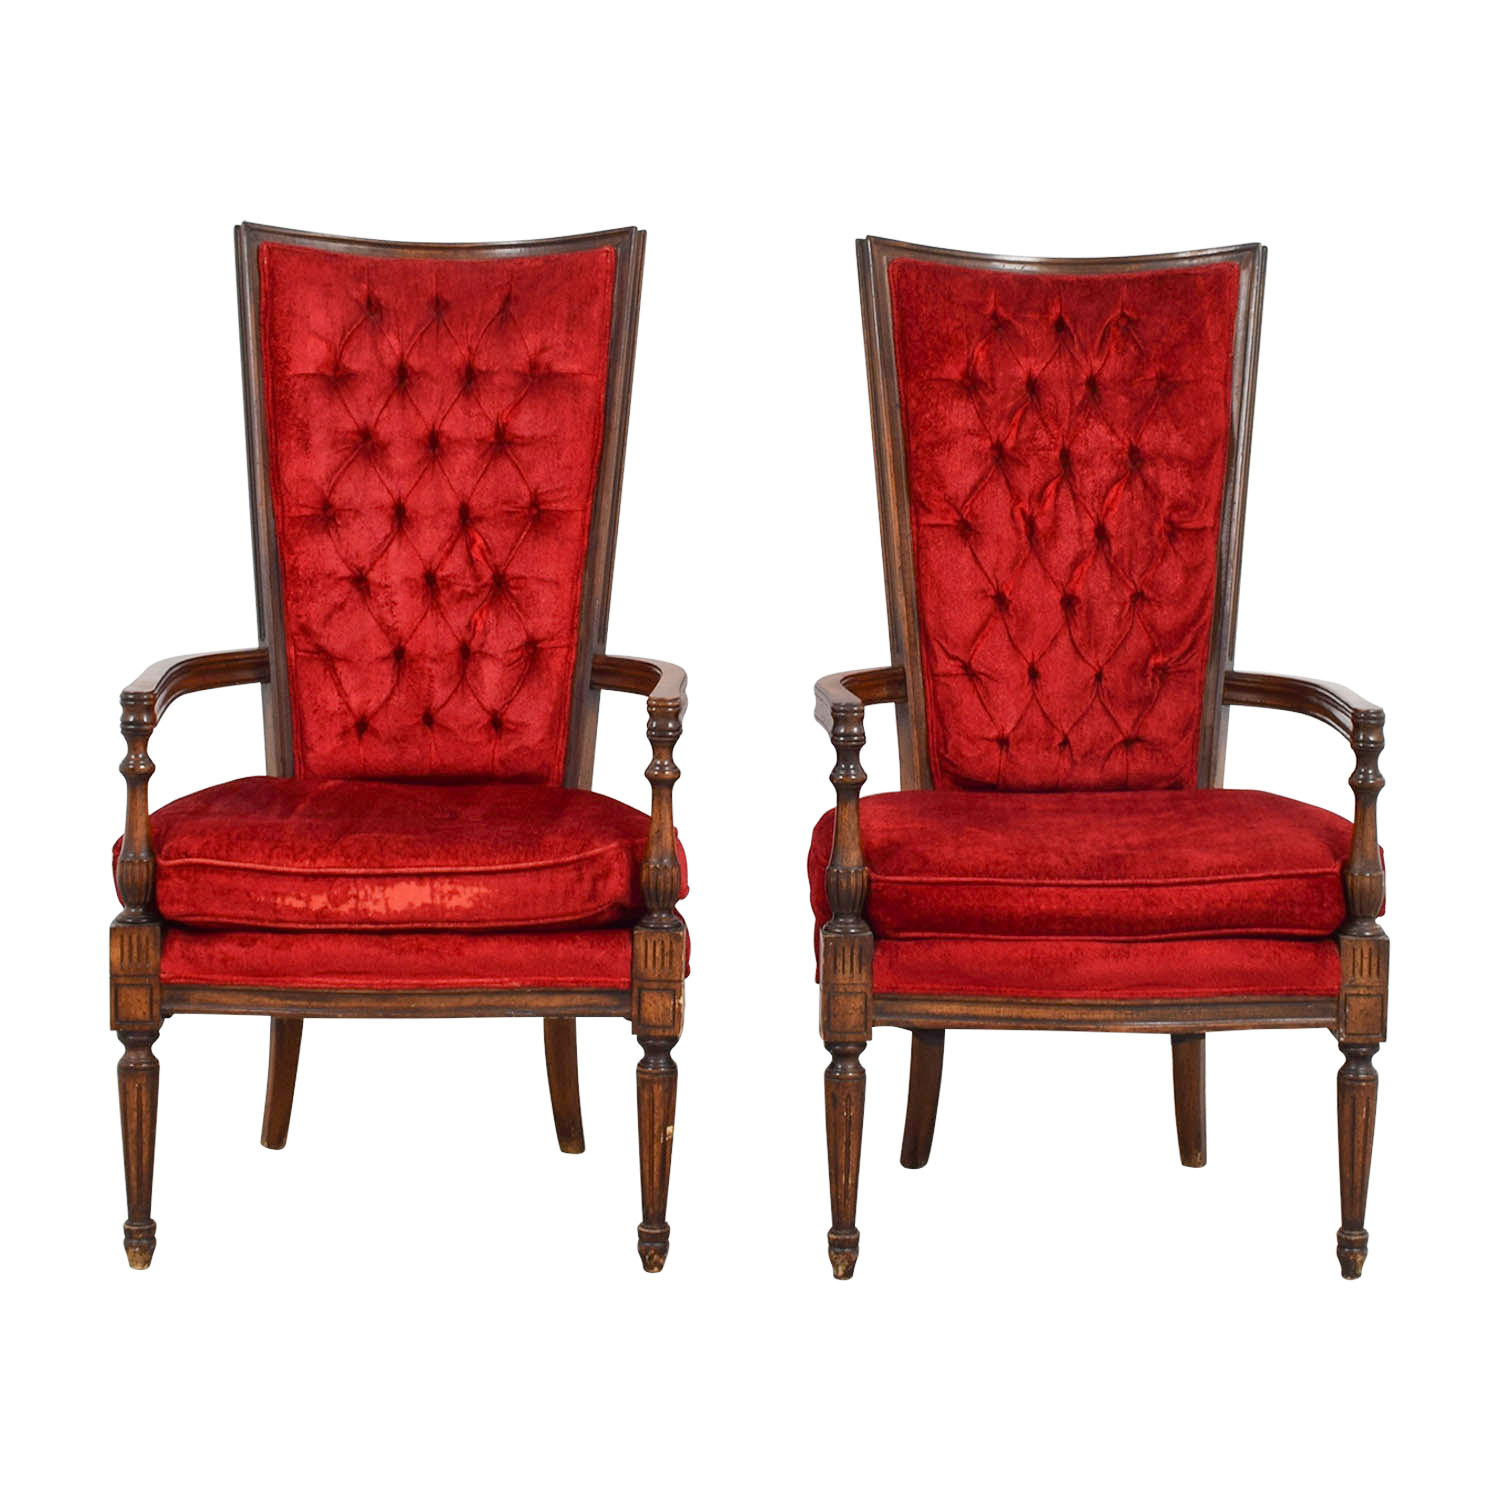 Vintage Red Tufted High Back Accent Chairs used